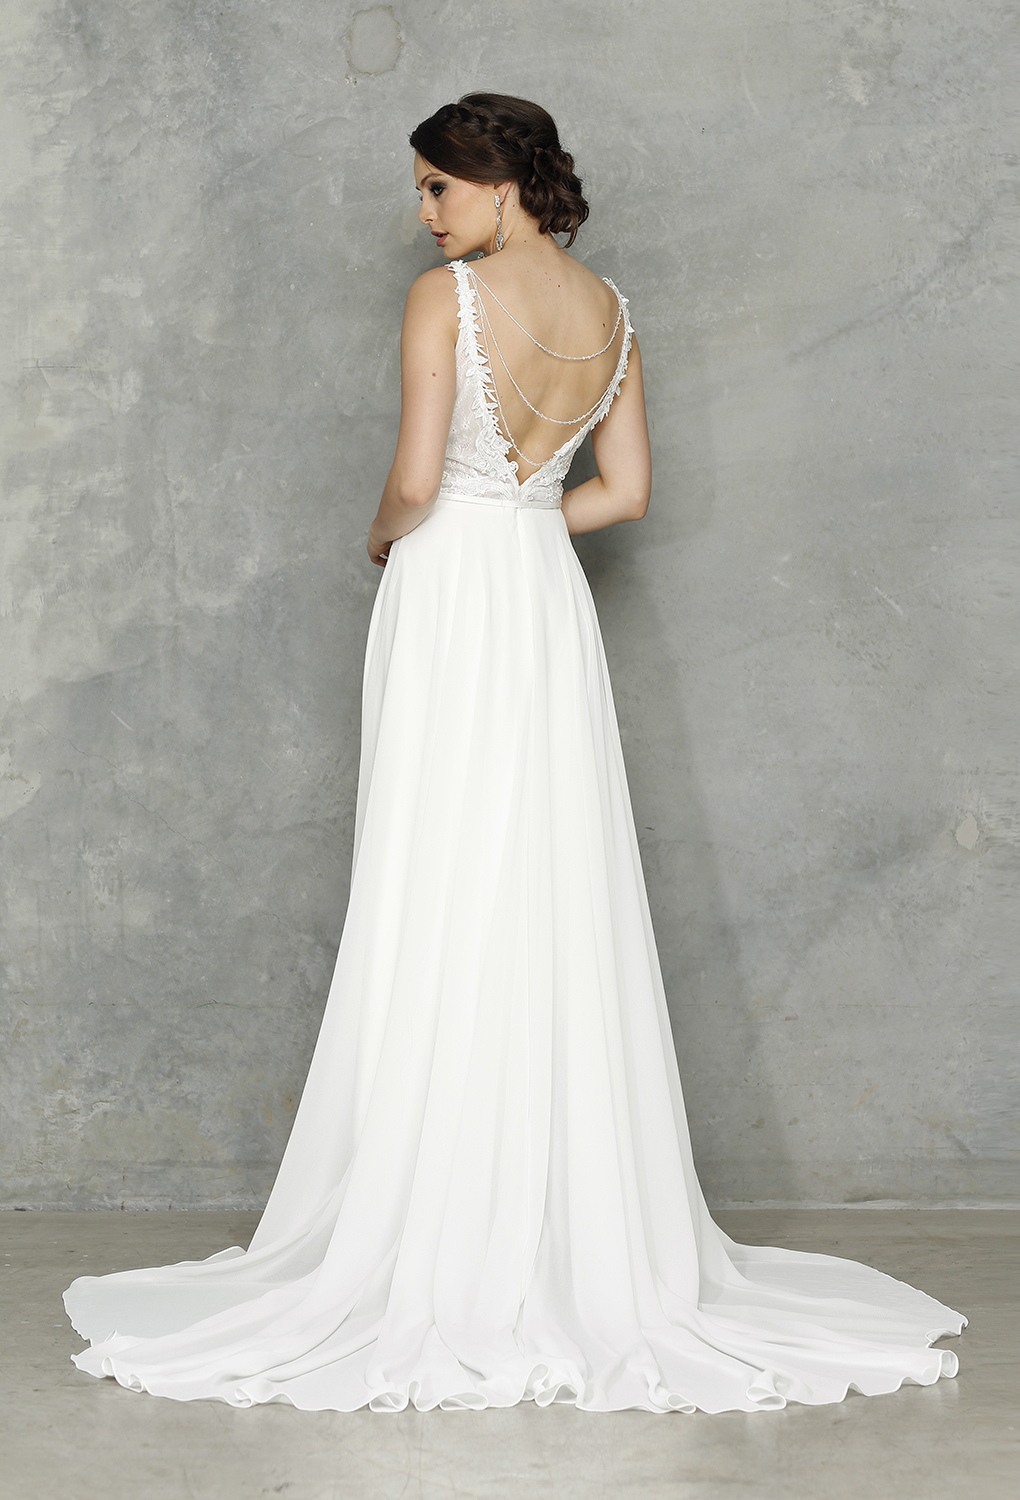 Chanel Wedding Dress